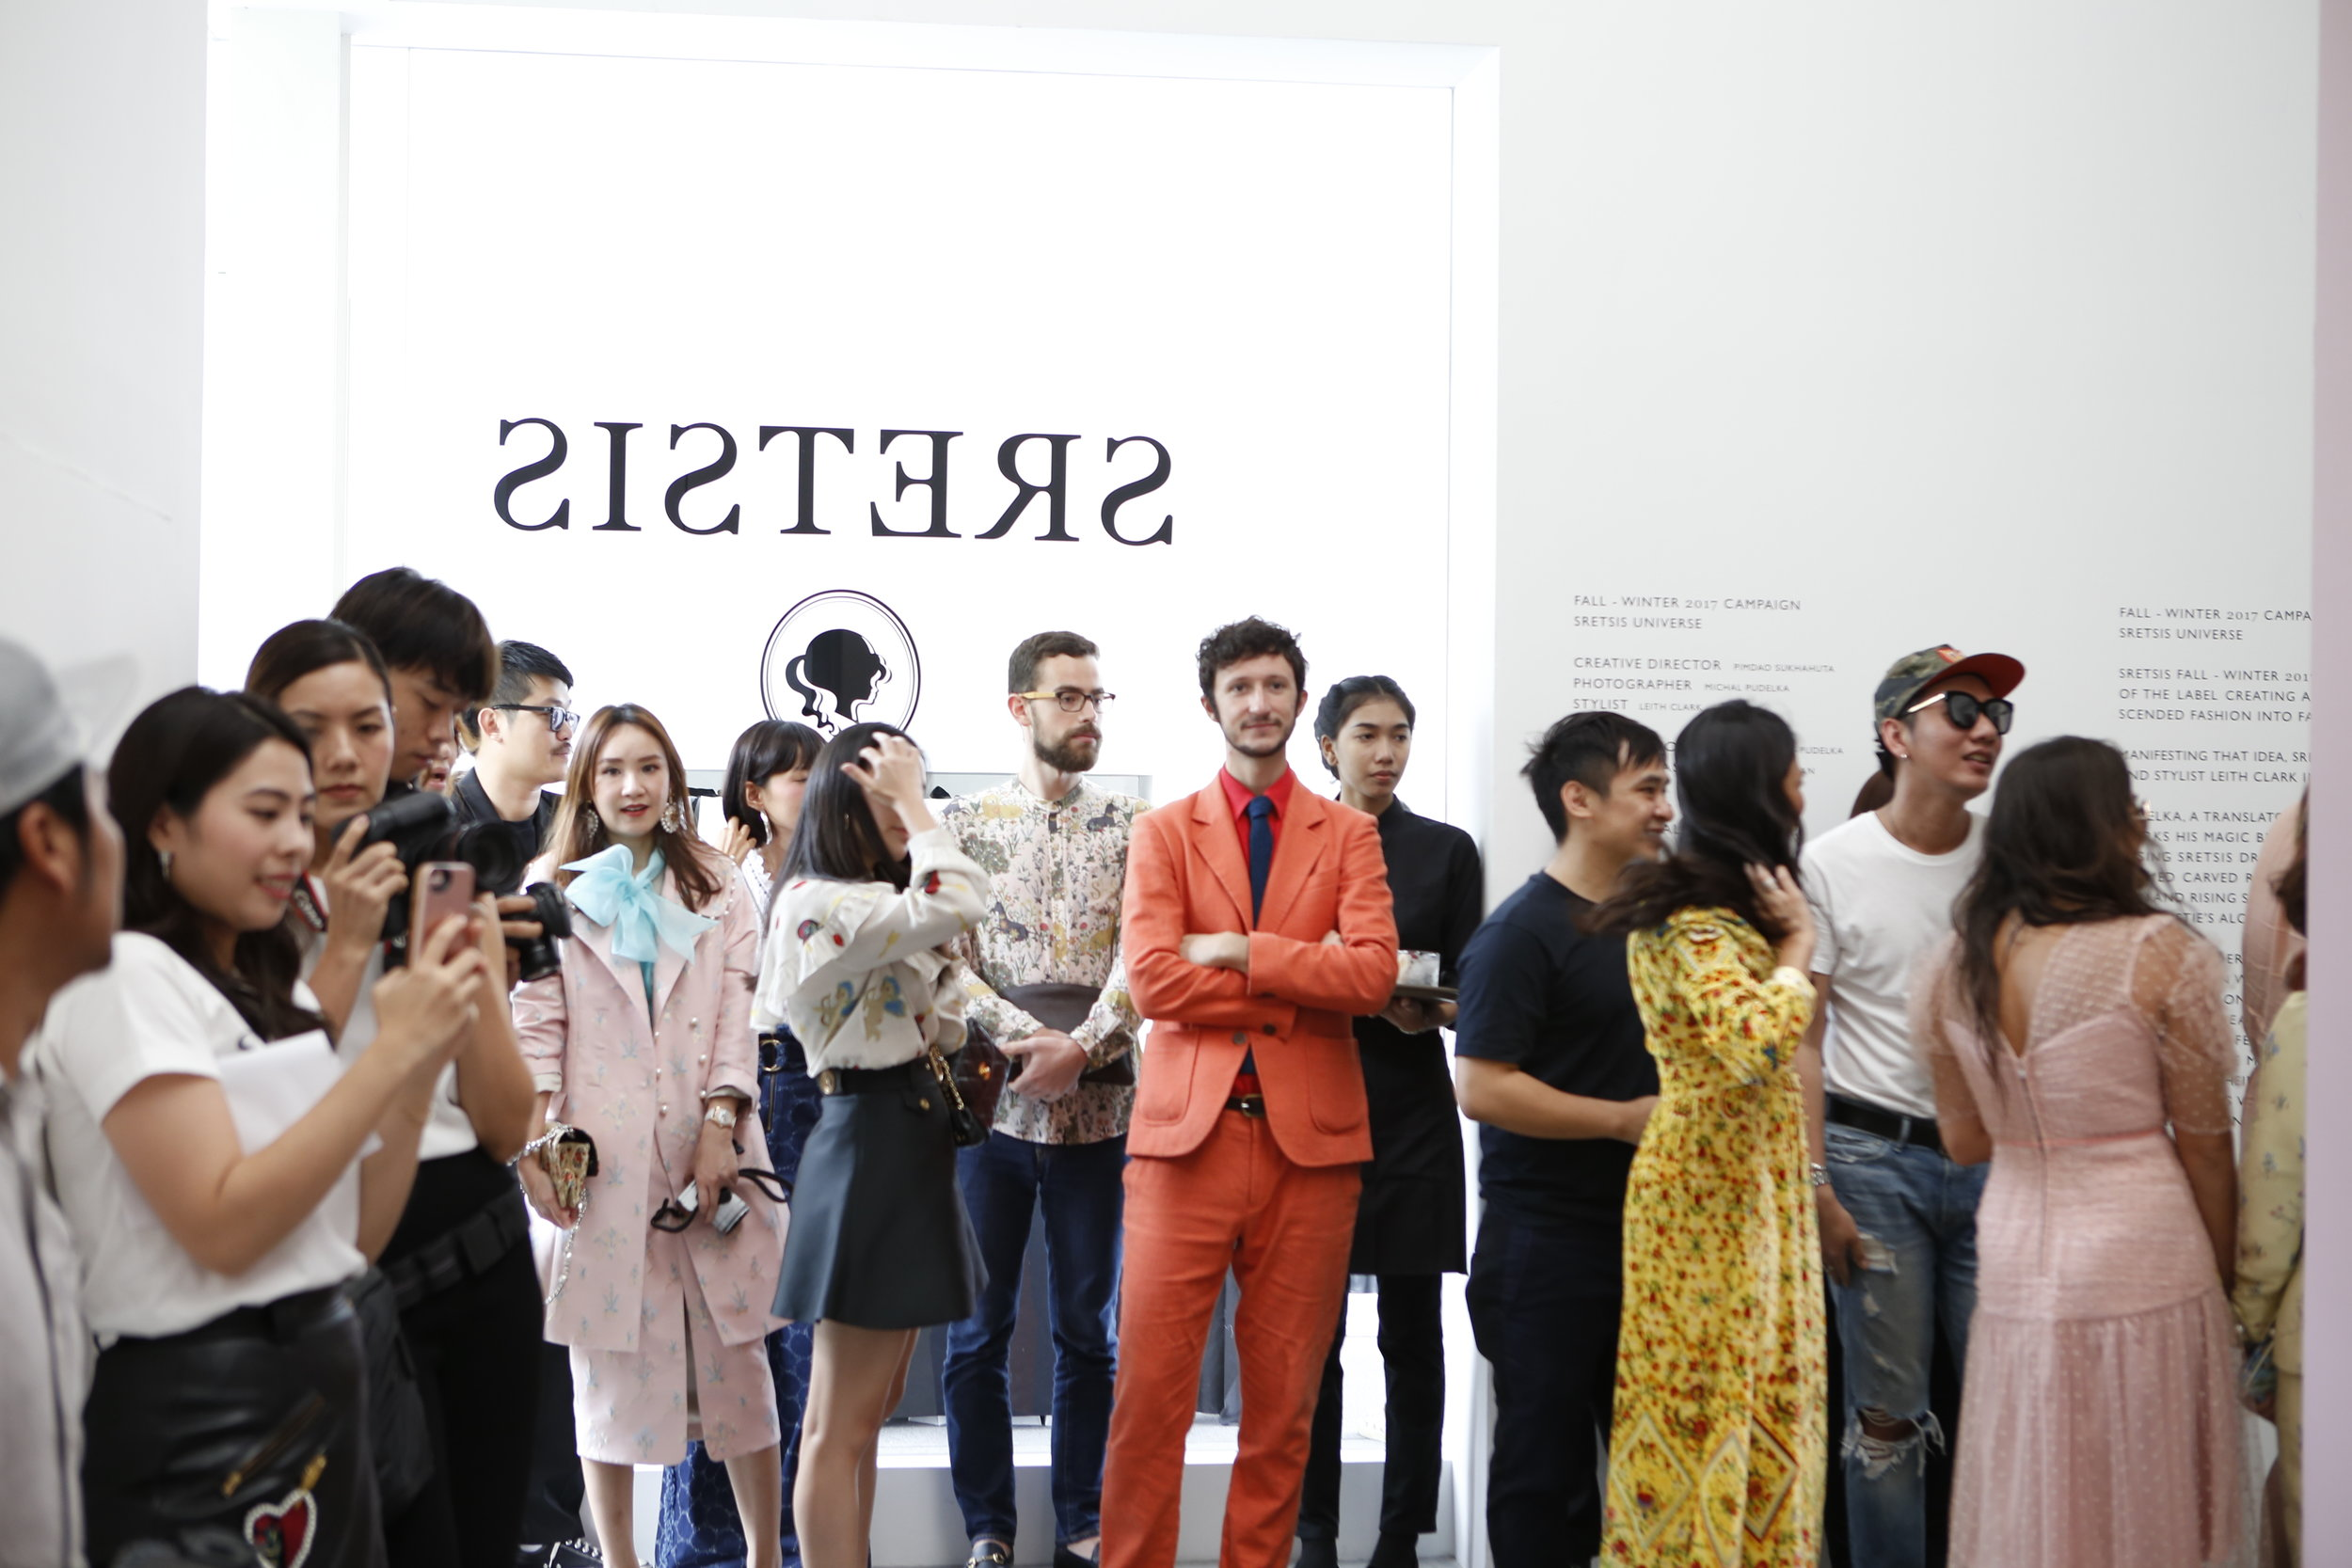 At Home in the Global Fashion Industry